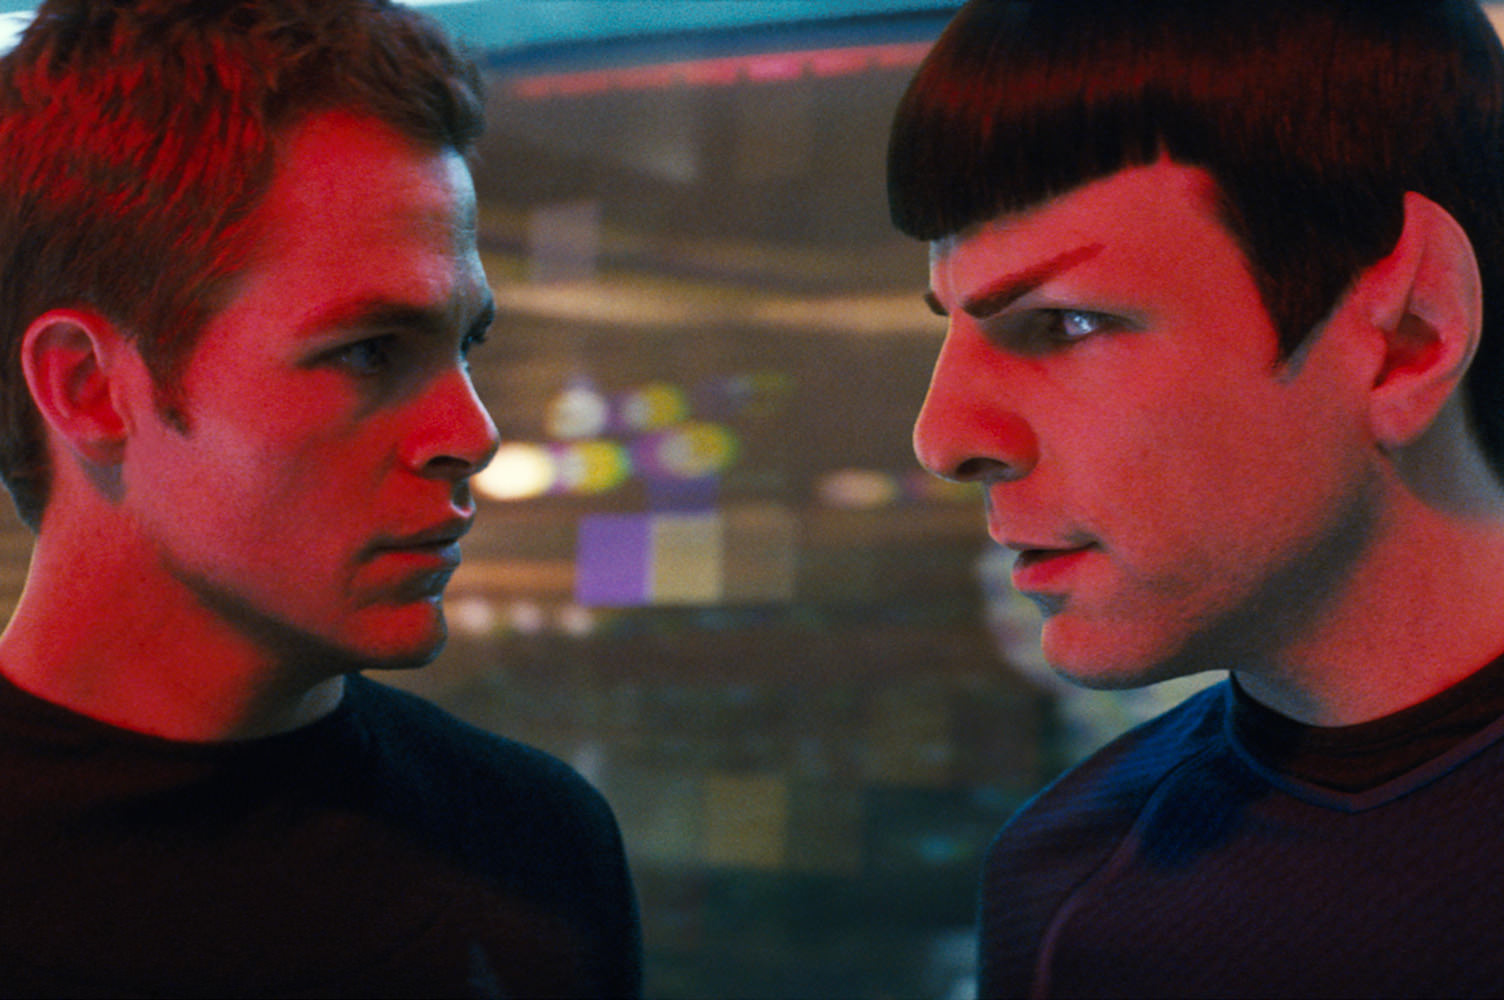 Star trek zachary quinto chris pine